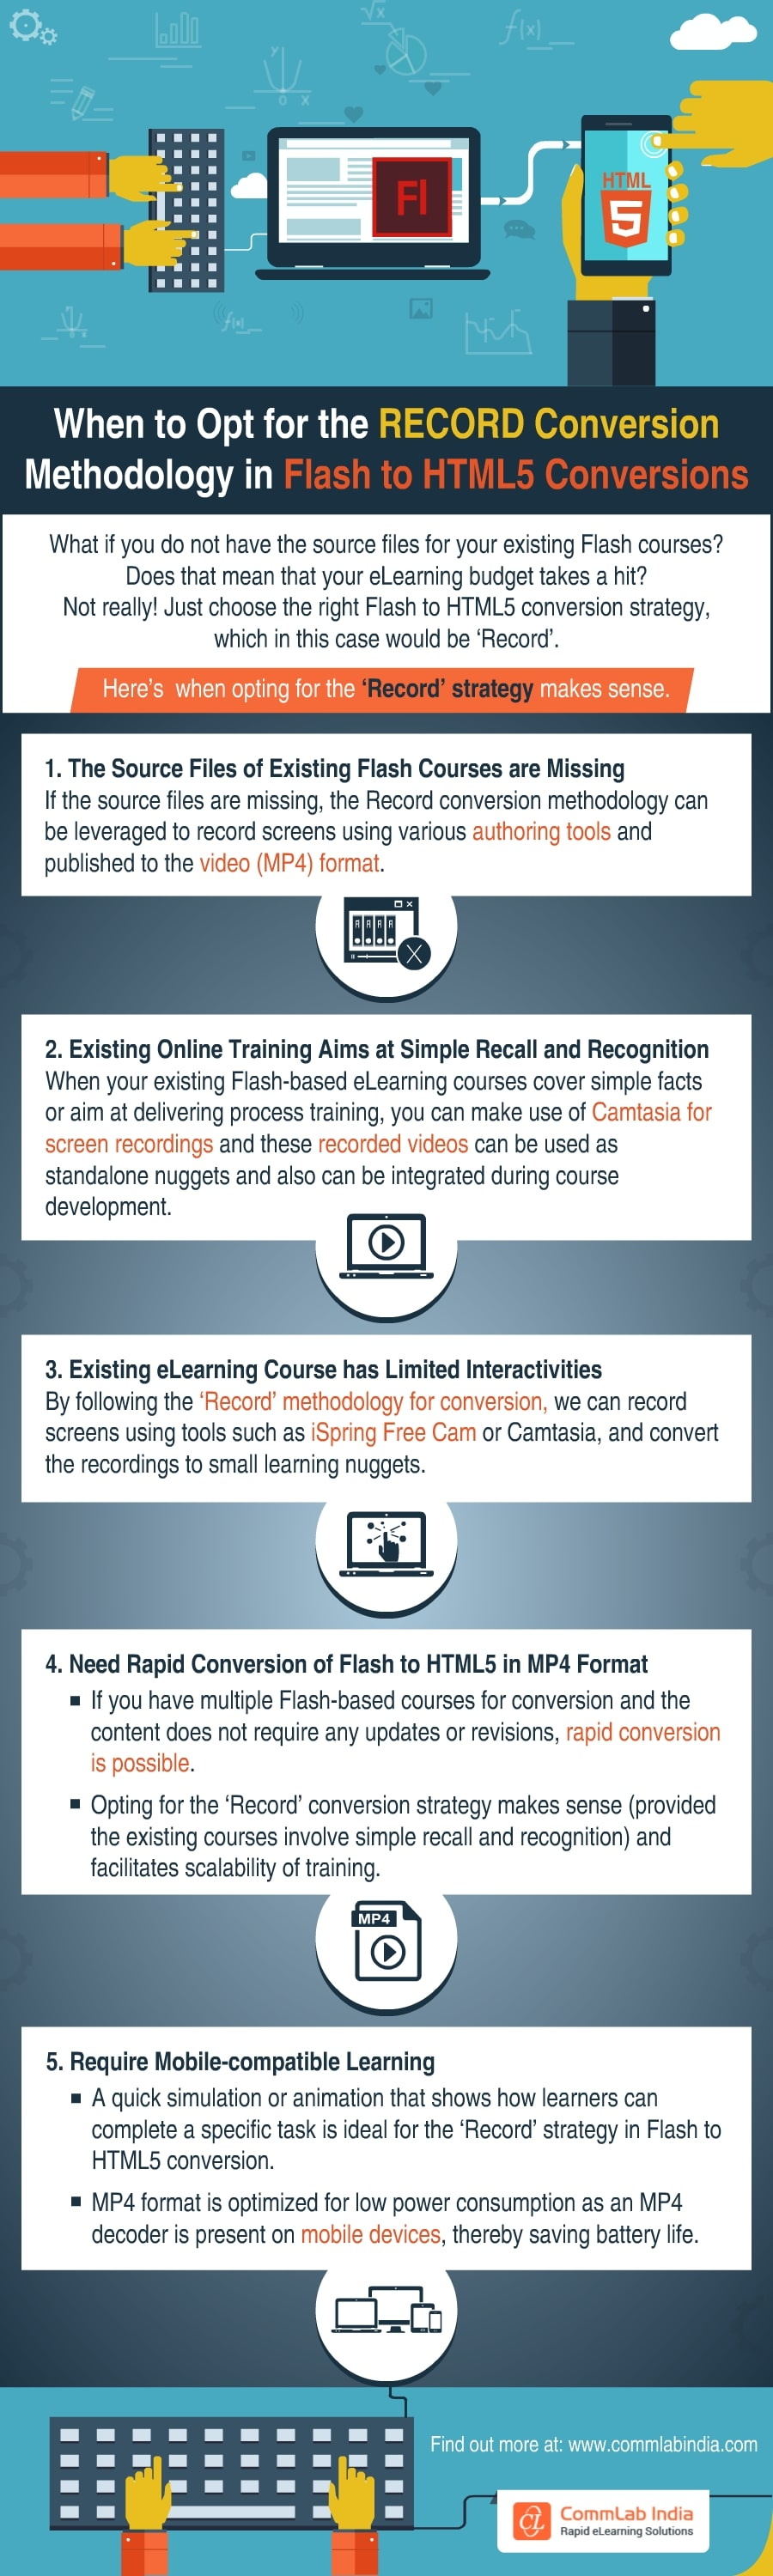 When to Opt for the RECORD Conversion Methodology in Flash to HTML5 Conversions [Infographic]